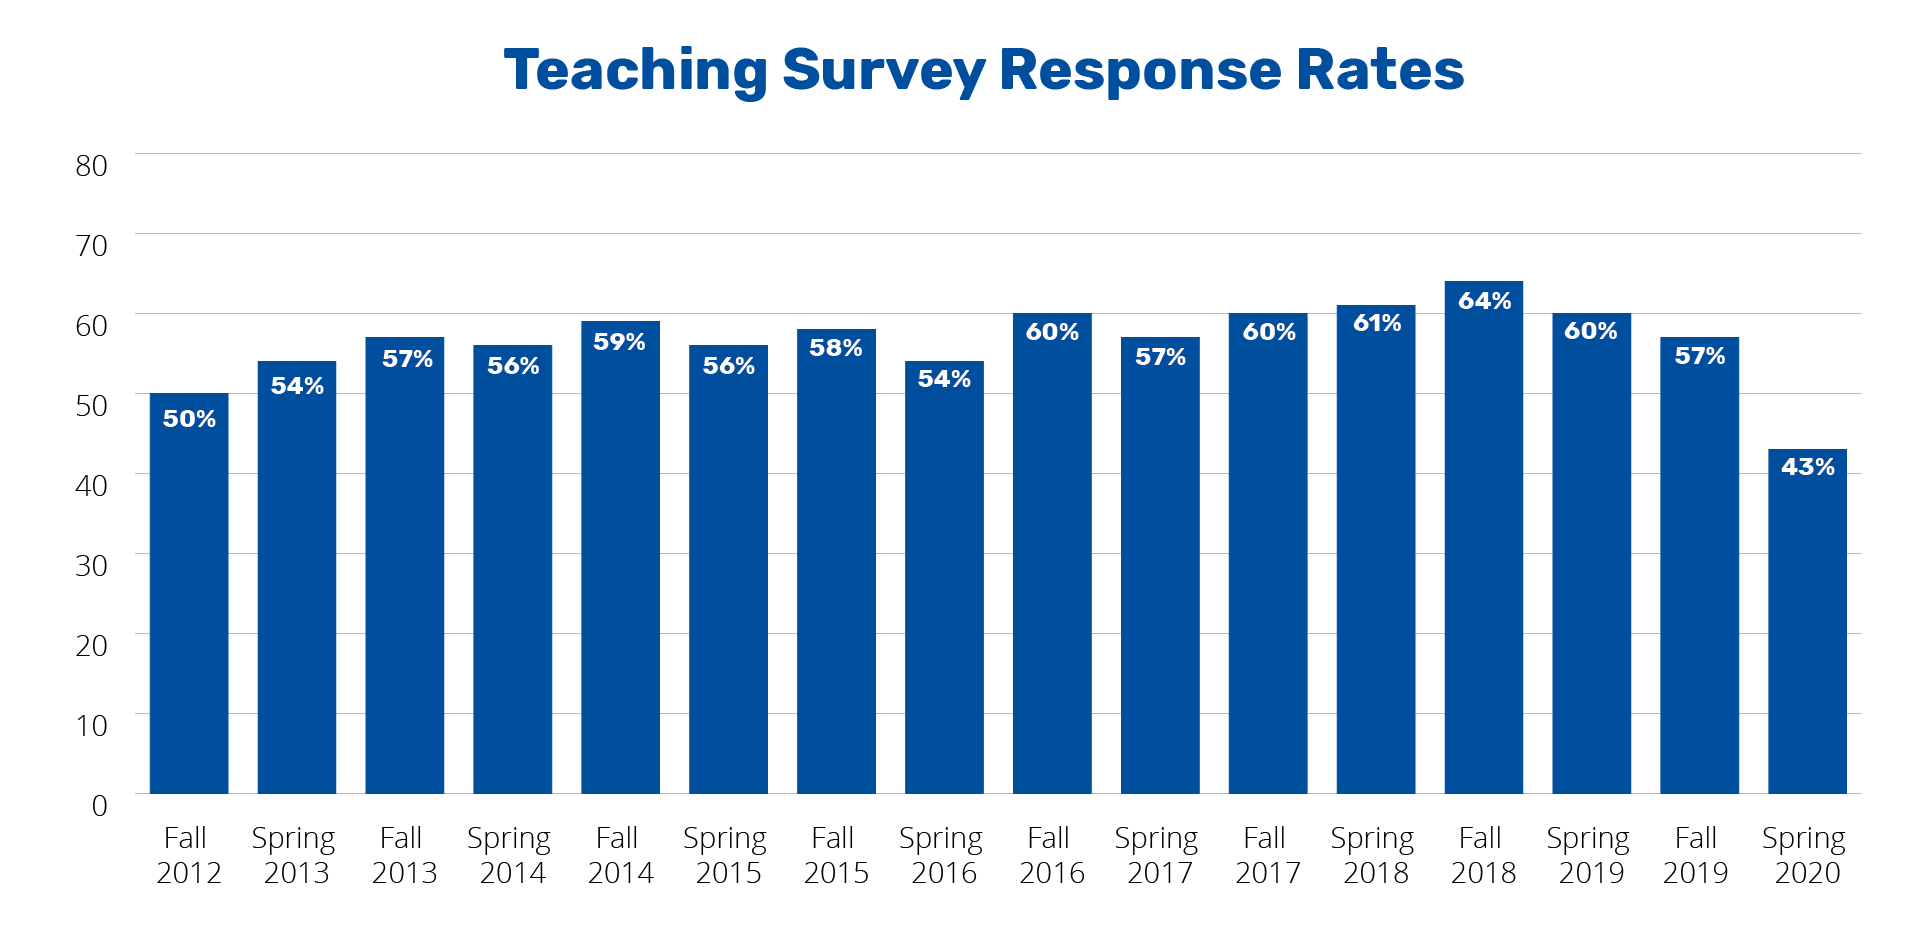 OMET Teaching Survey Response Rates from 2012-2020